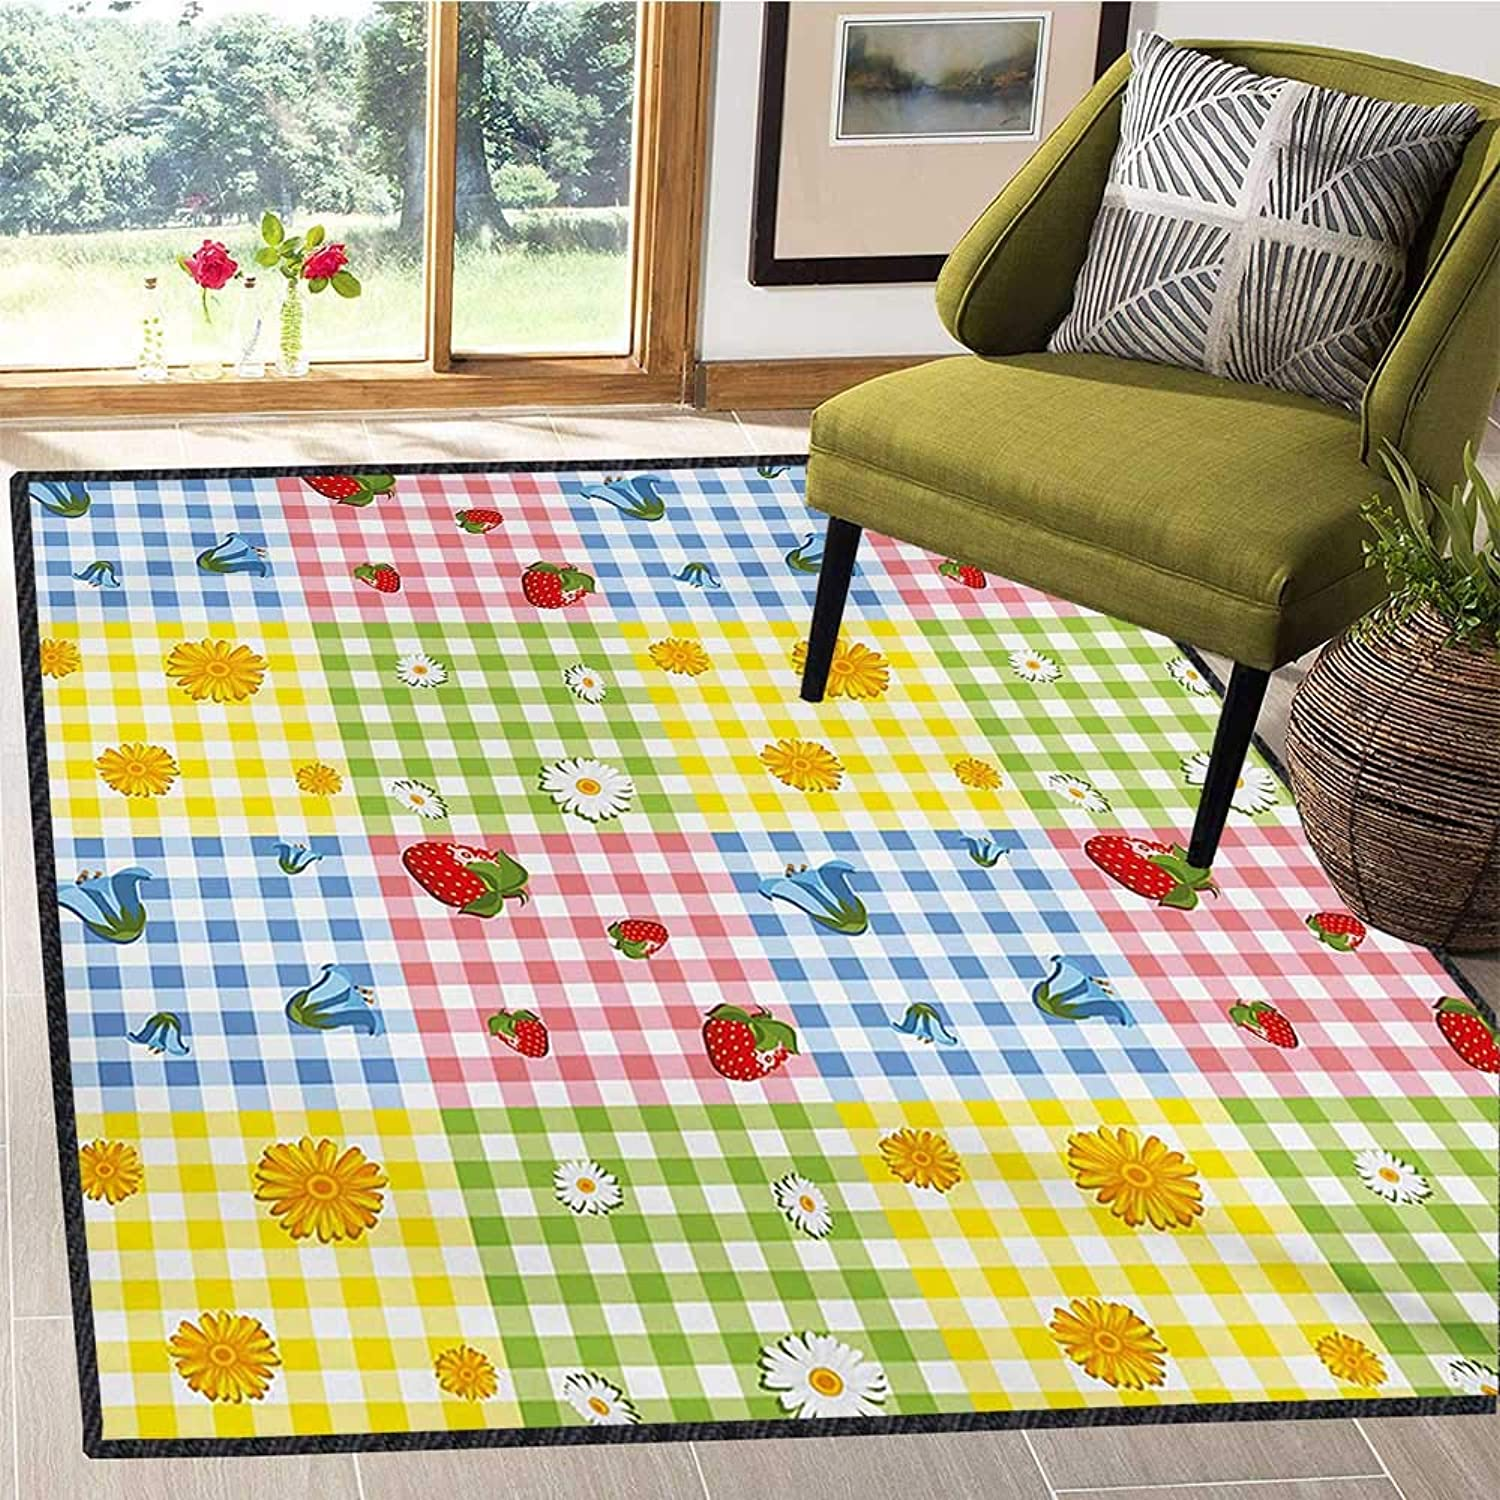 Spring, Door Mats Area Rug, colorful Pattern with Strawberries Chamomiles blueebells and Marigold Picnic Design, Door Mat Indoors 5x6 Ft Multicolor